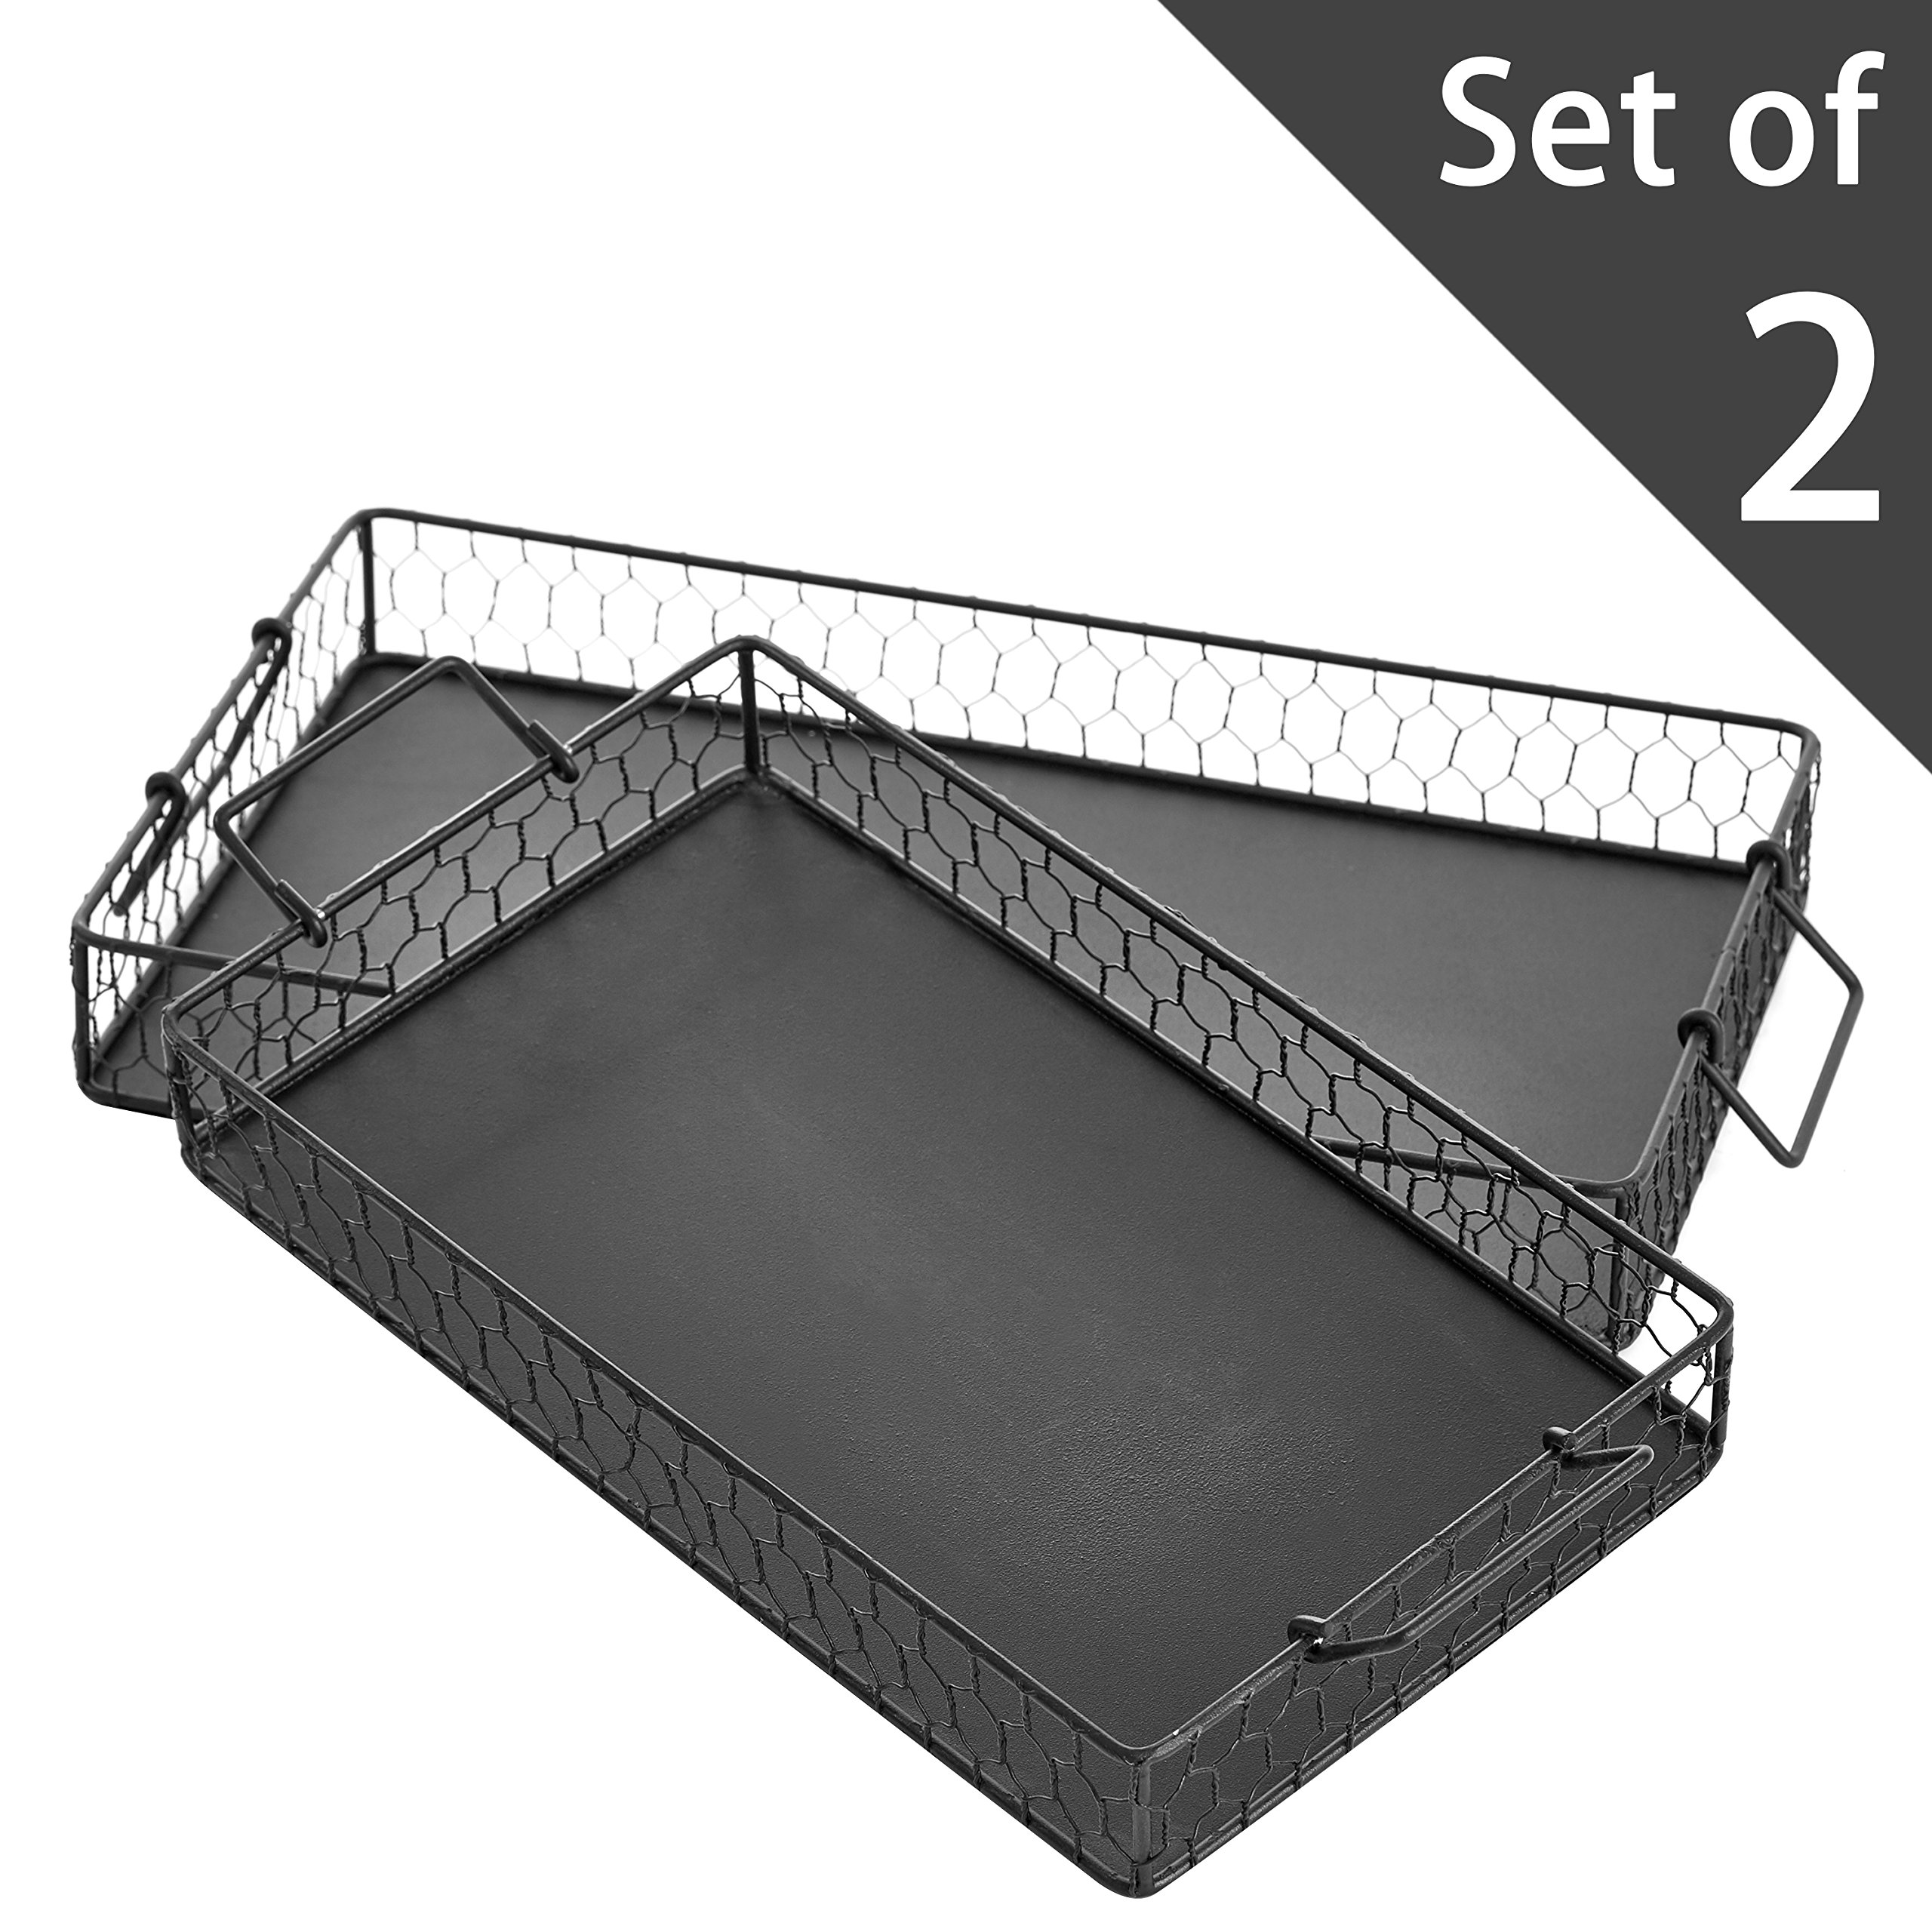 MyGift Set of 2 Chicken Wire Country Design Black Metal Mesh Rectangular Decorative Trays with Handles